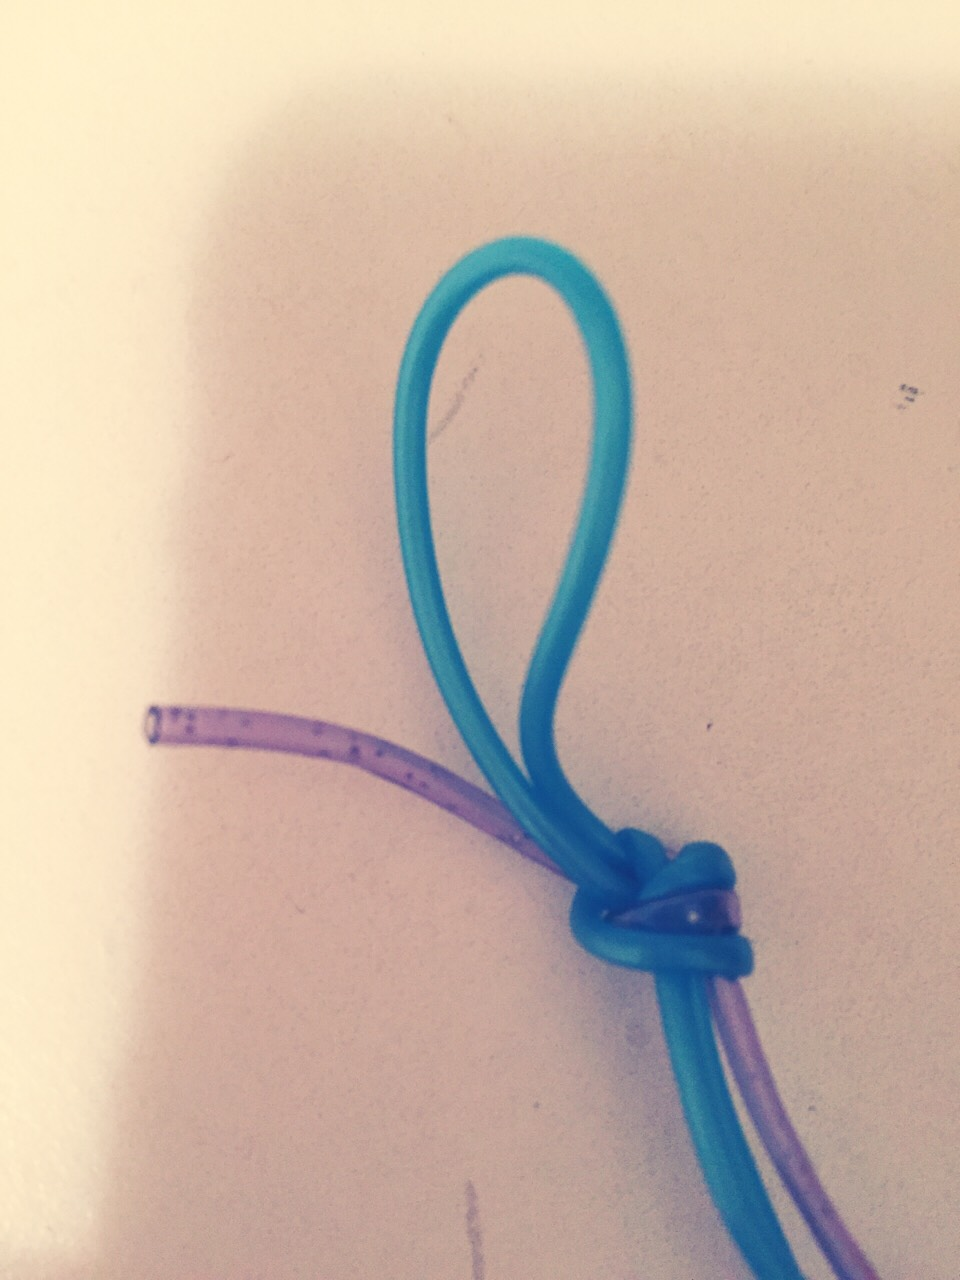 Make a simple knot with the long string doubled and the single string single like shown in the photo